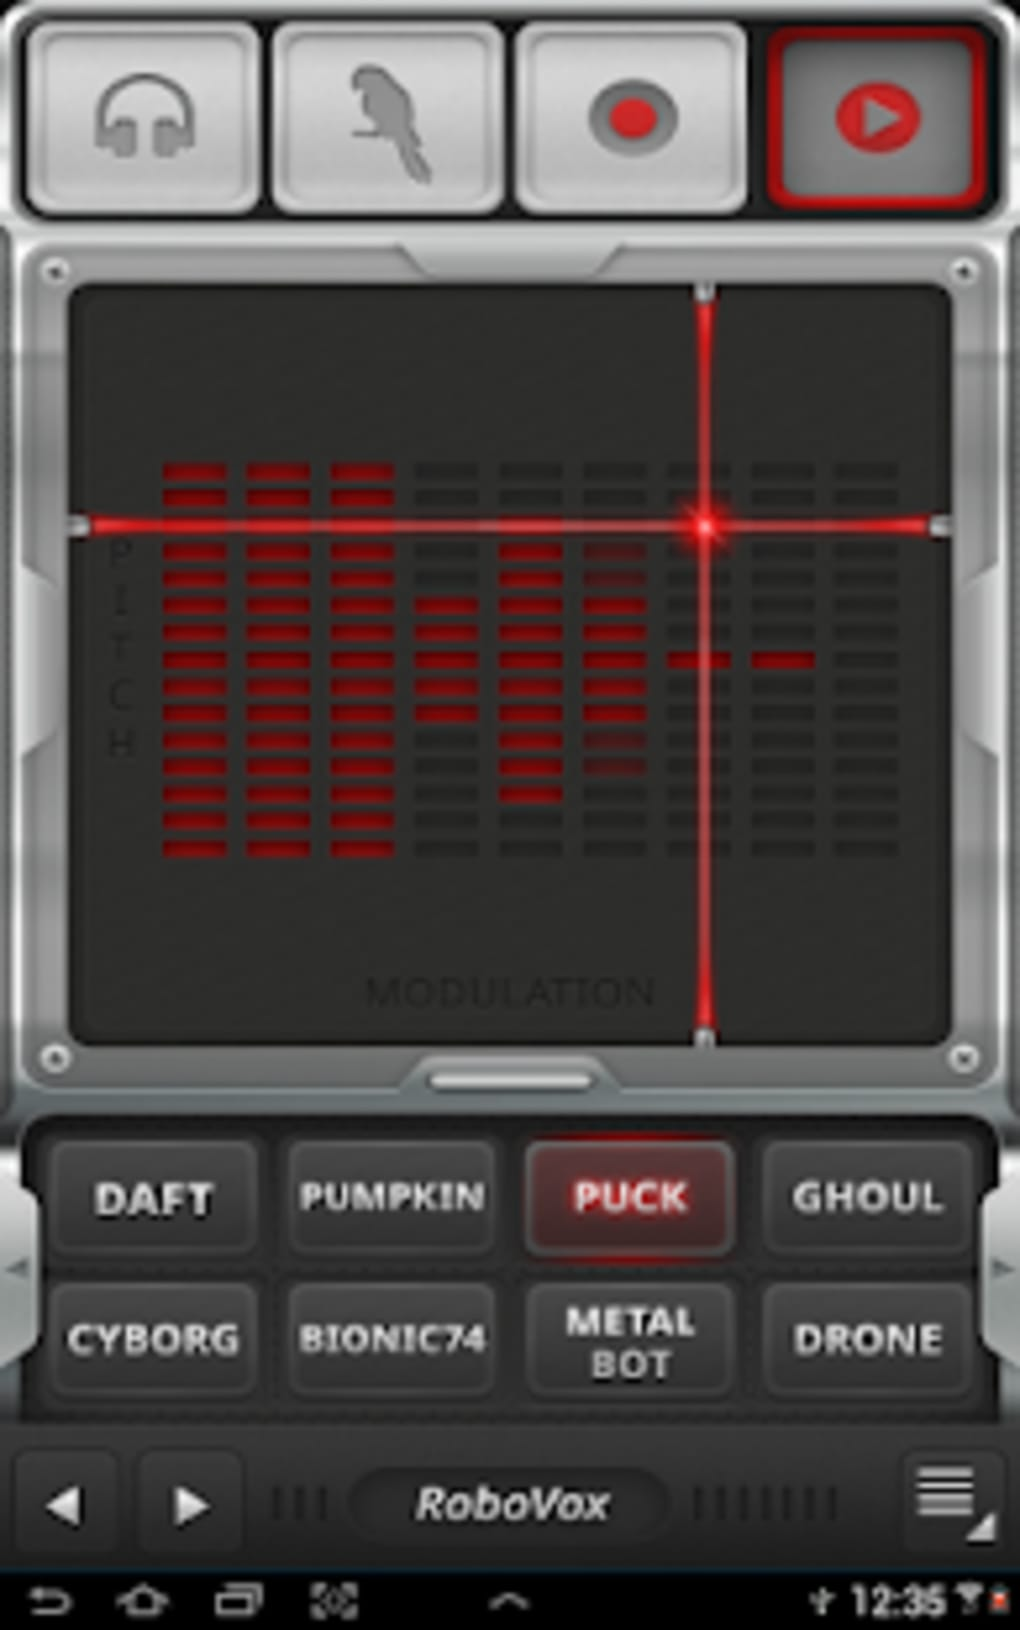 RoboVox Voice Changer for Android - Download